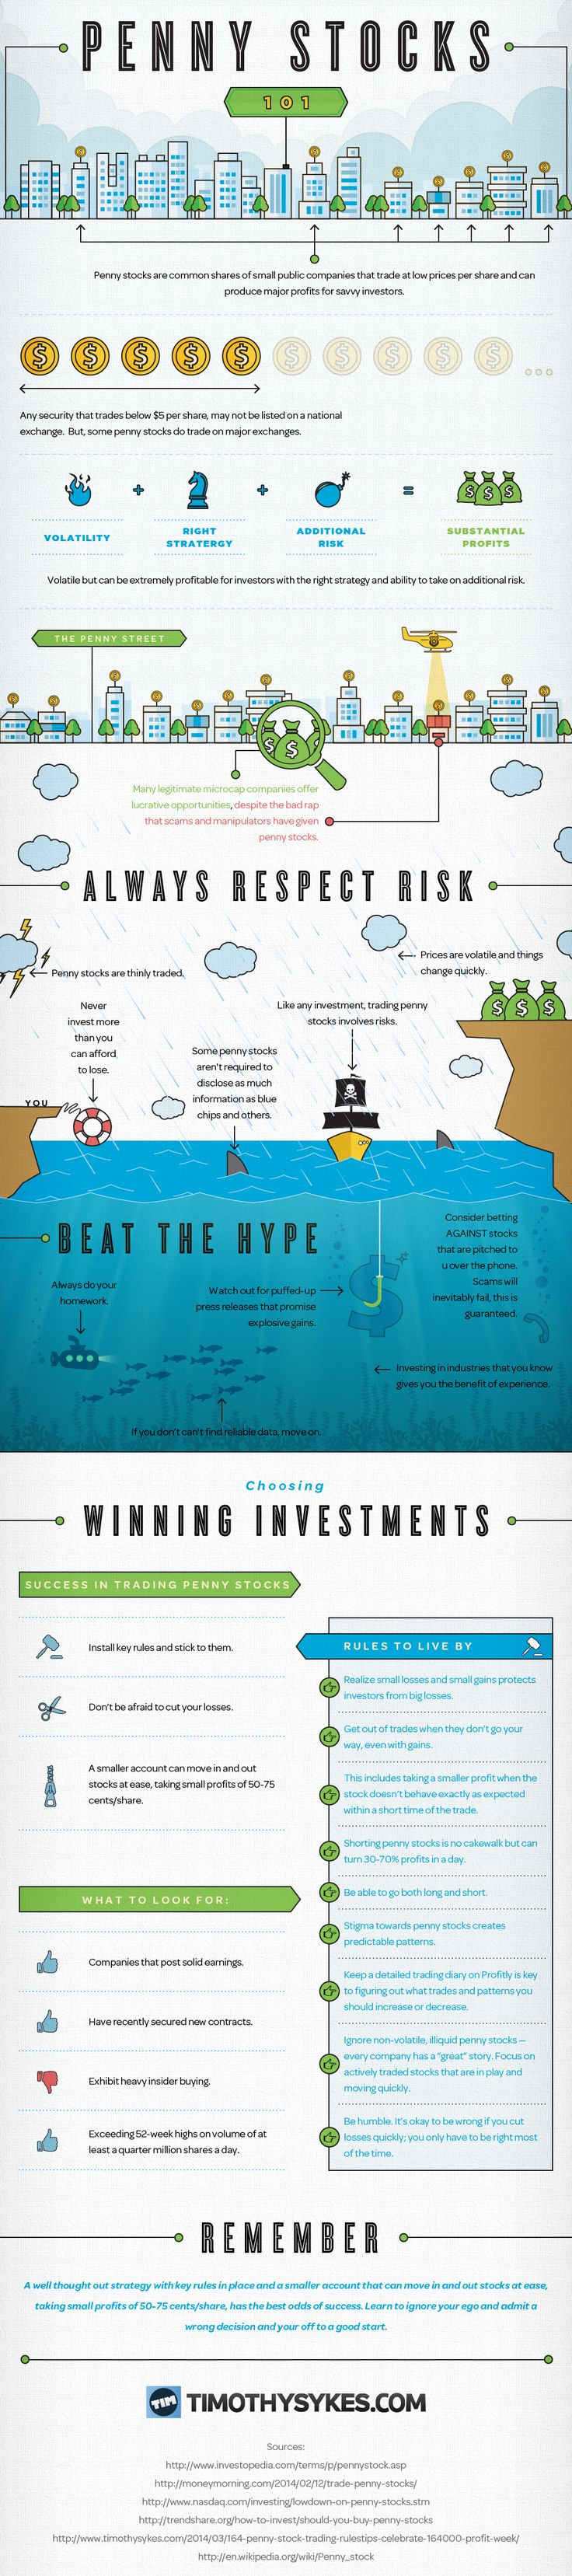 Penny Stocks 101 #infographic #Stock #PennyStock